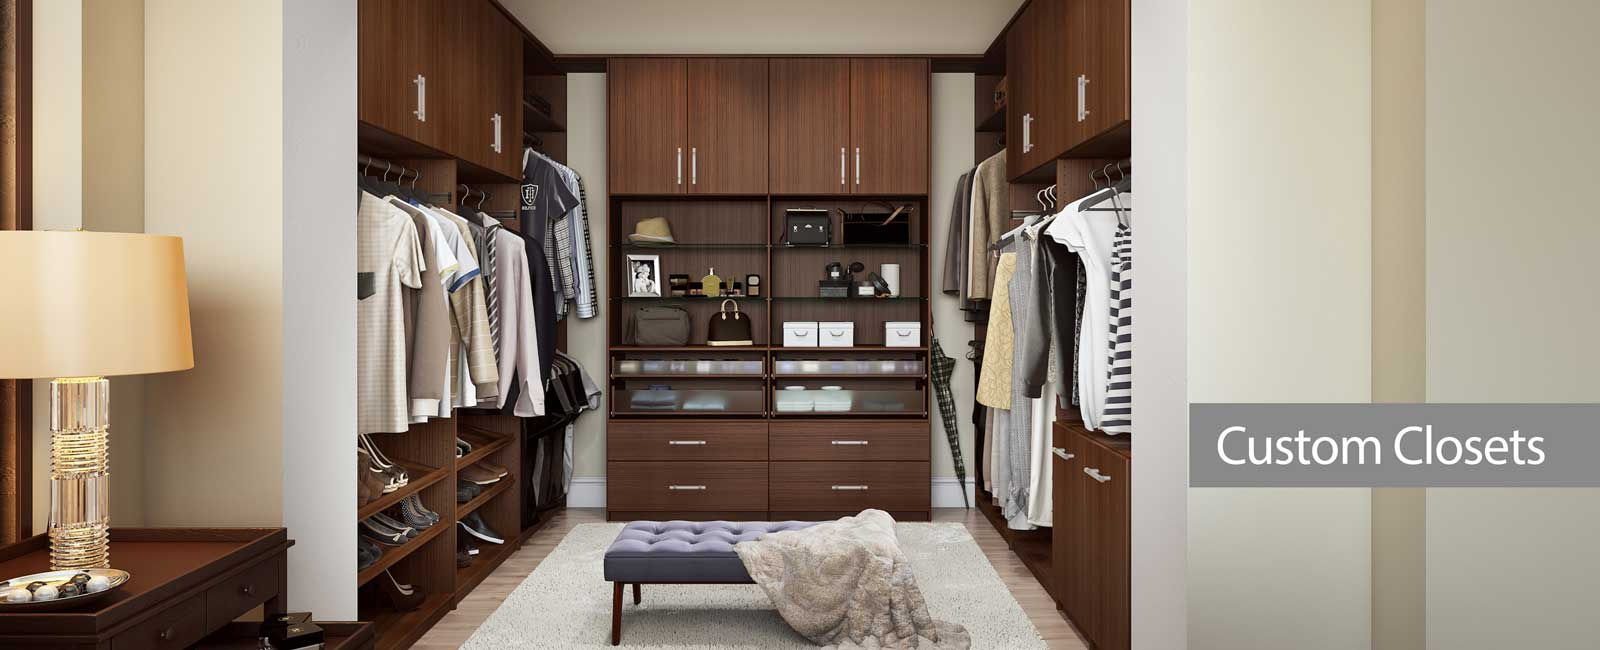 Custom closets, Discount Closet Organizer Systems